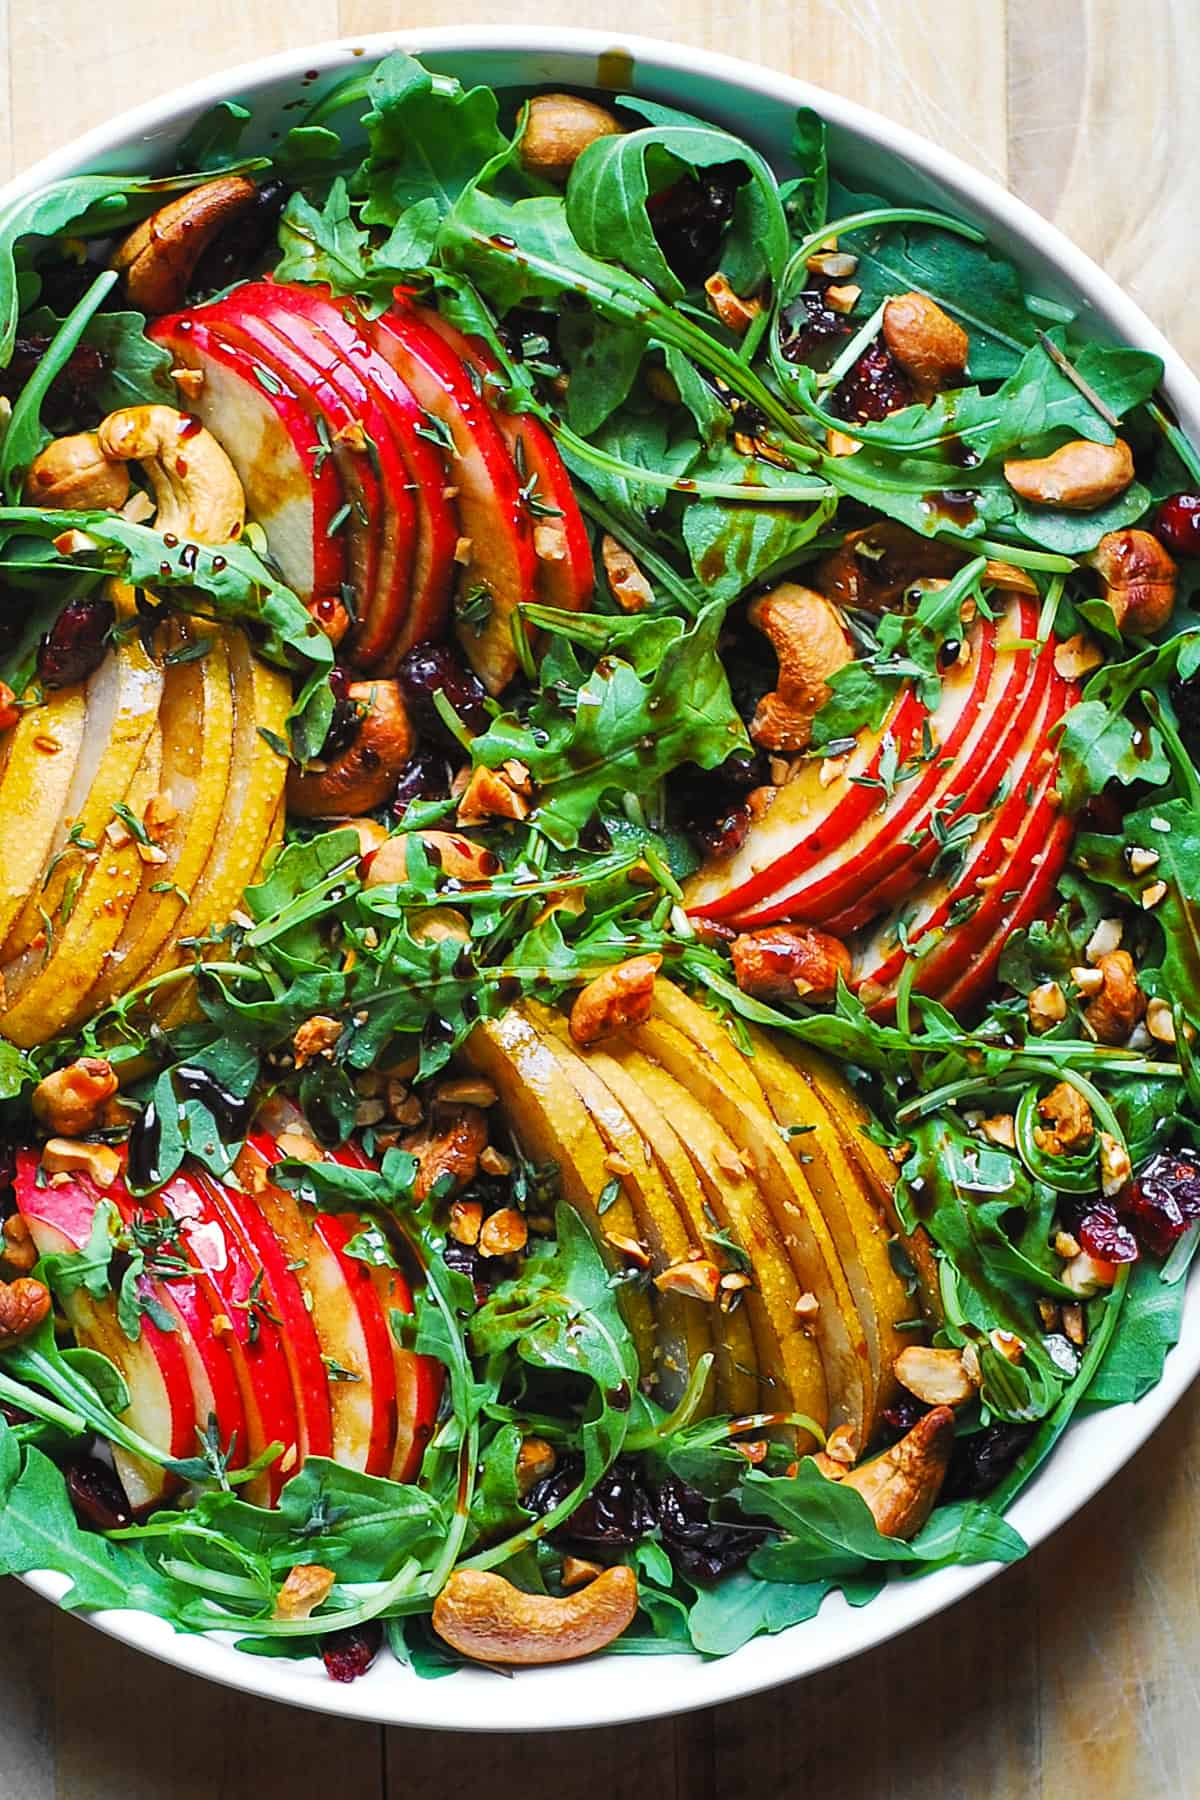 arugula salad with pears, apples, cashews, dried cranberries in a white bowl